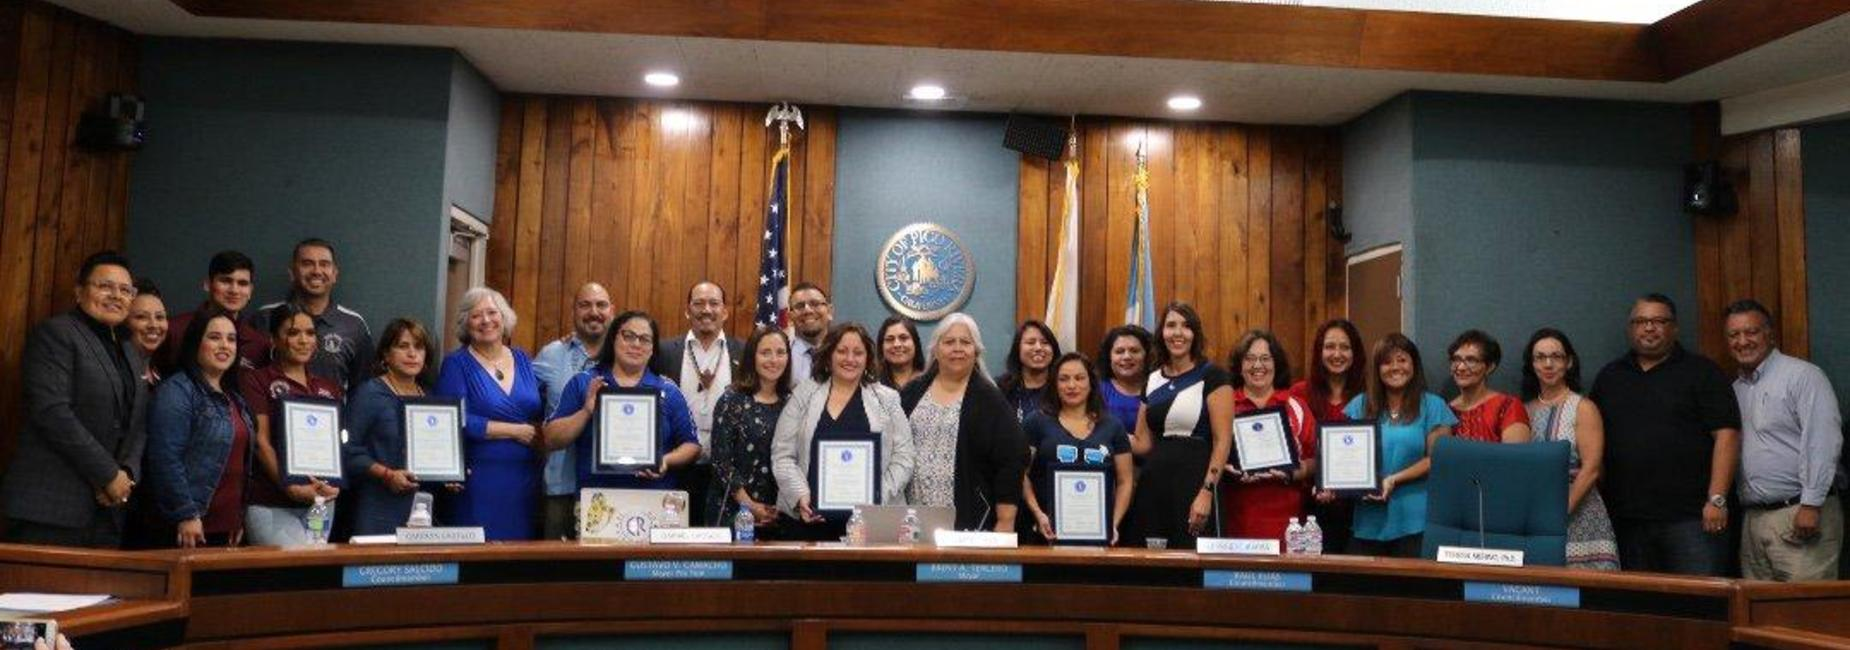 Board Recognition for PBIS